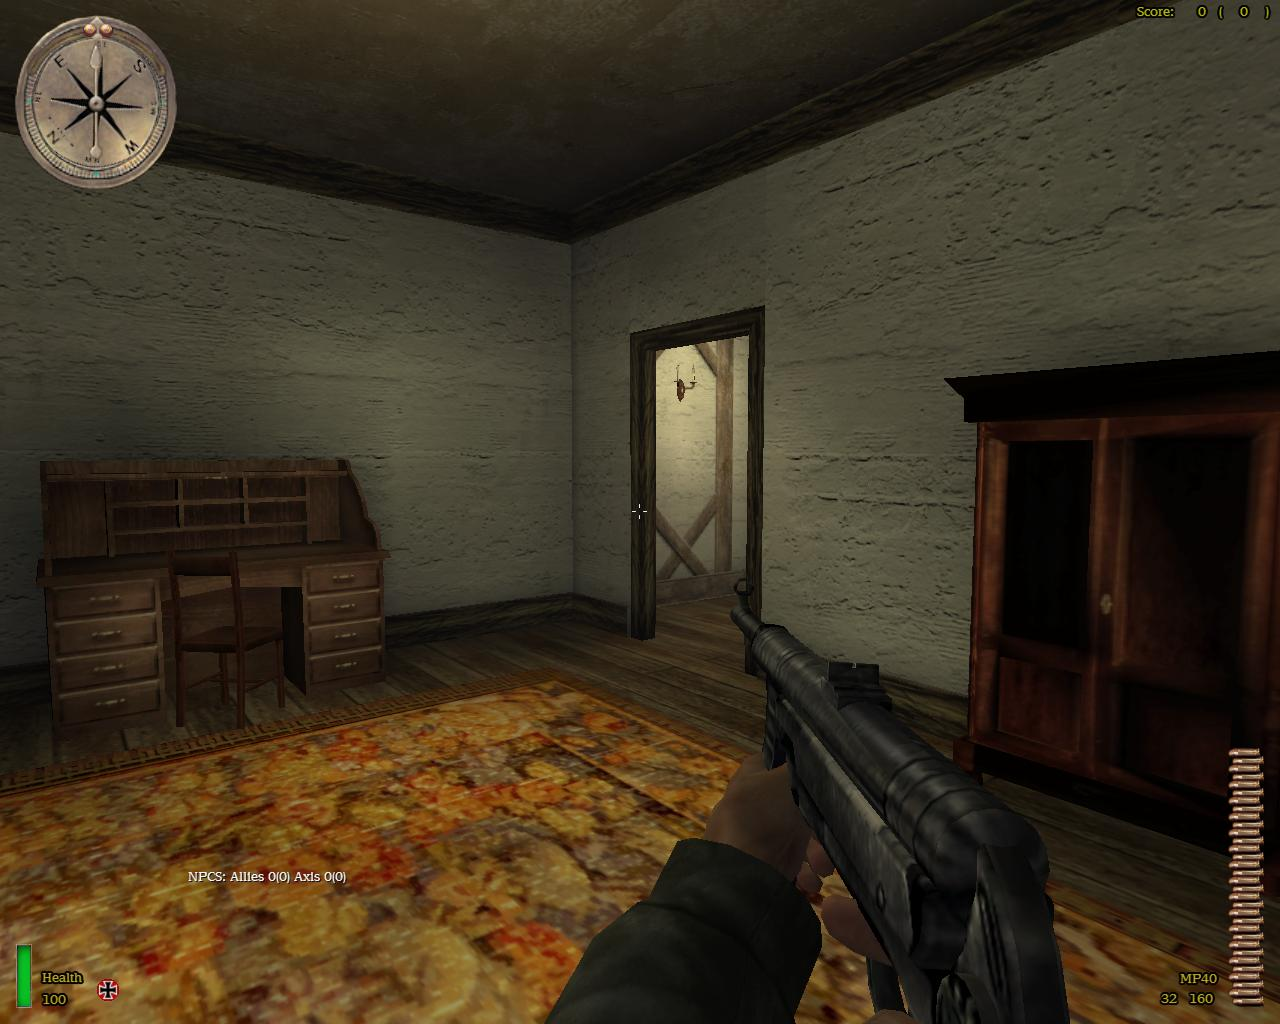 mp40 medal of honor wiki fandom powered by wikia. Black Bedroom Furniture Sets. Home Design Ideas